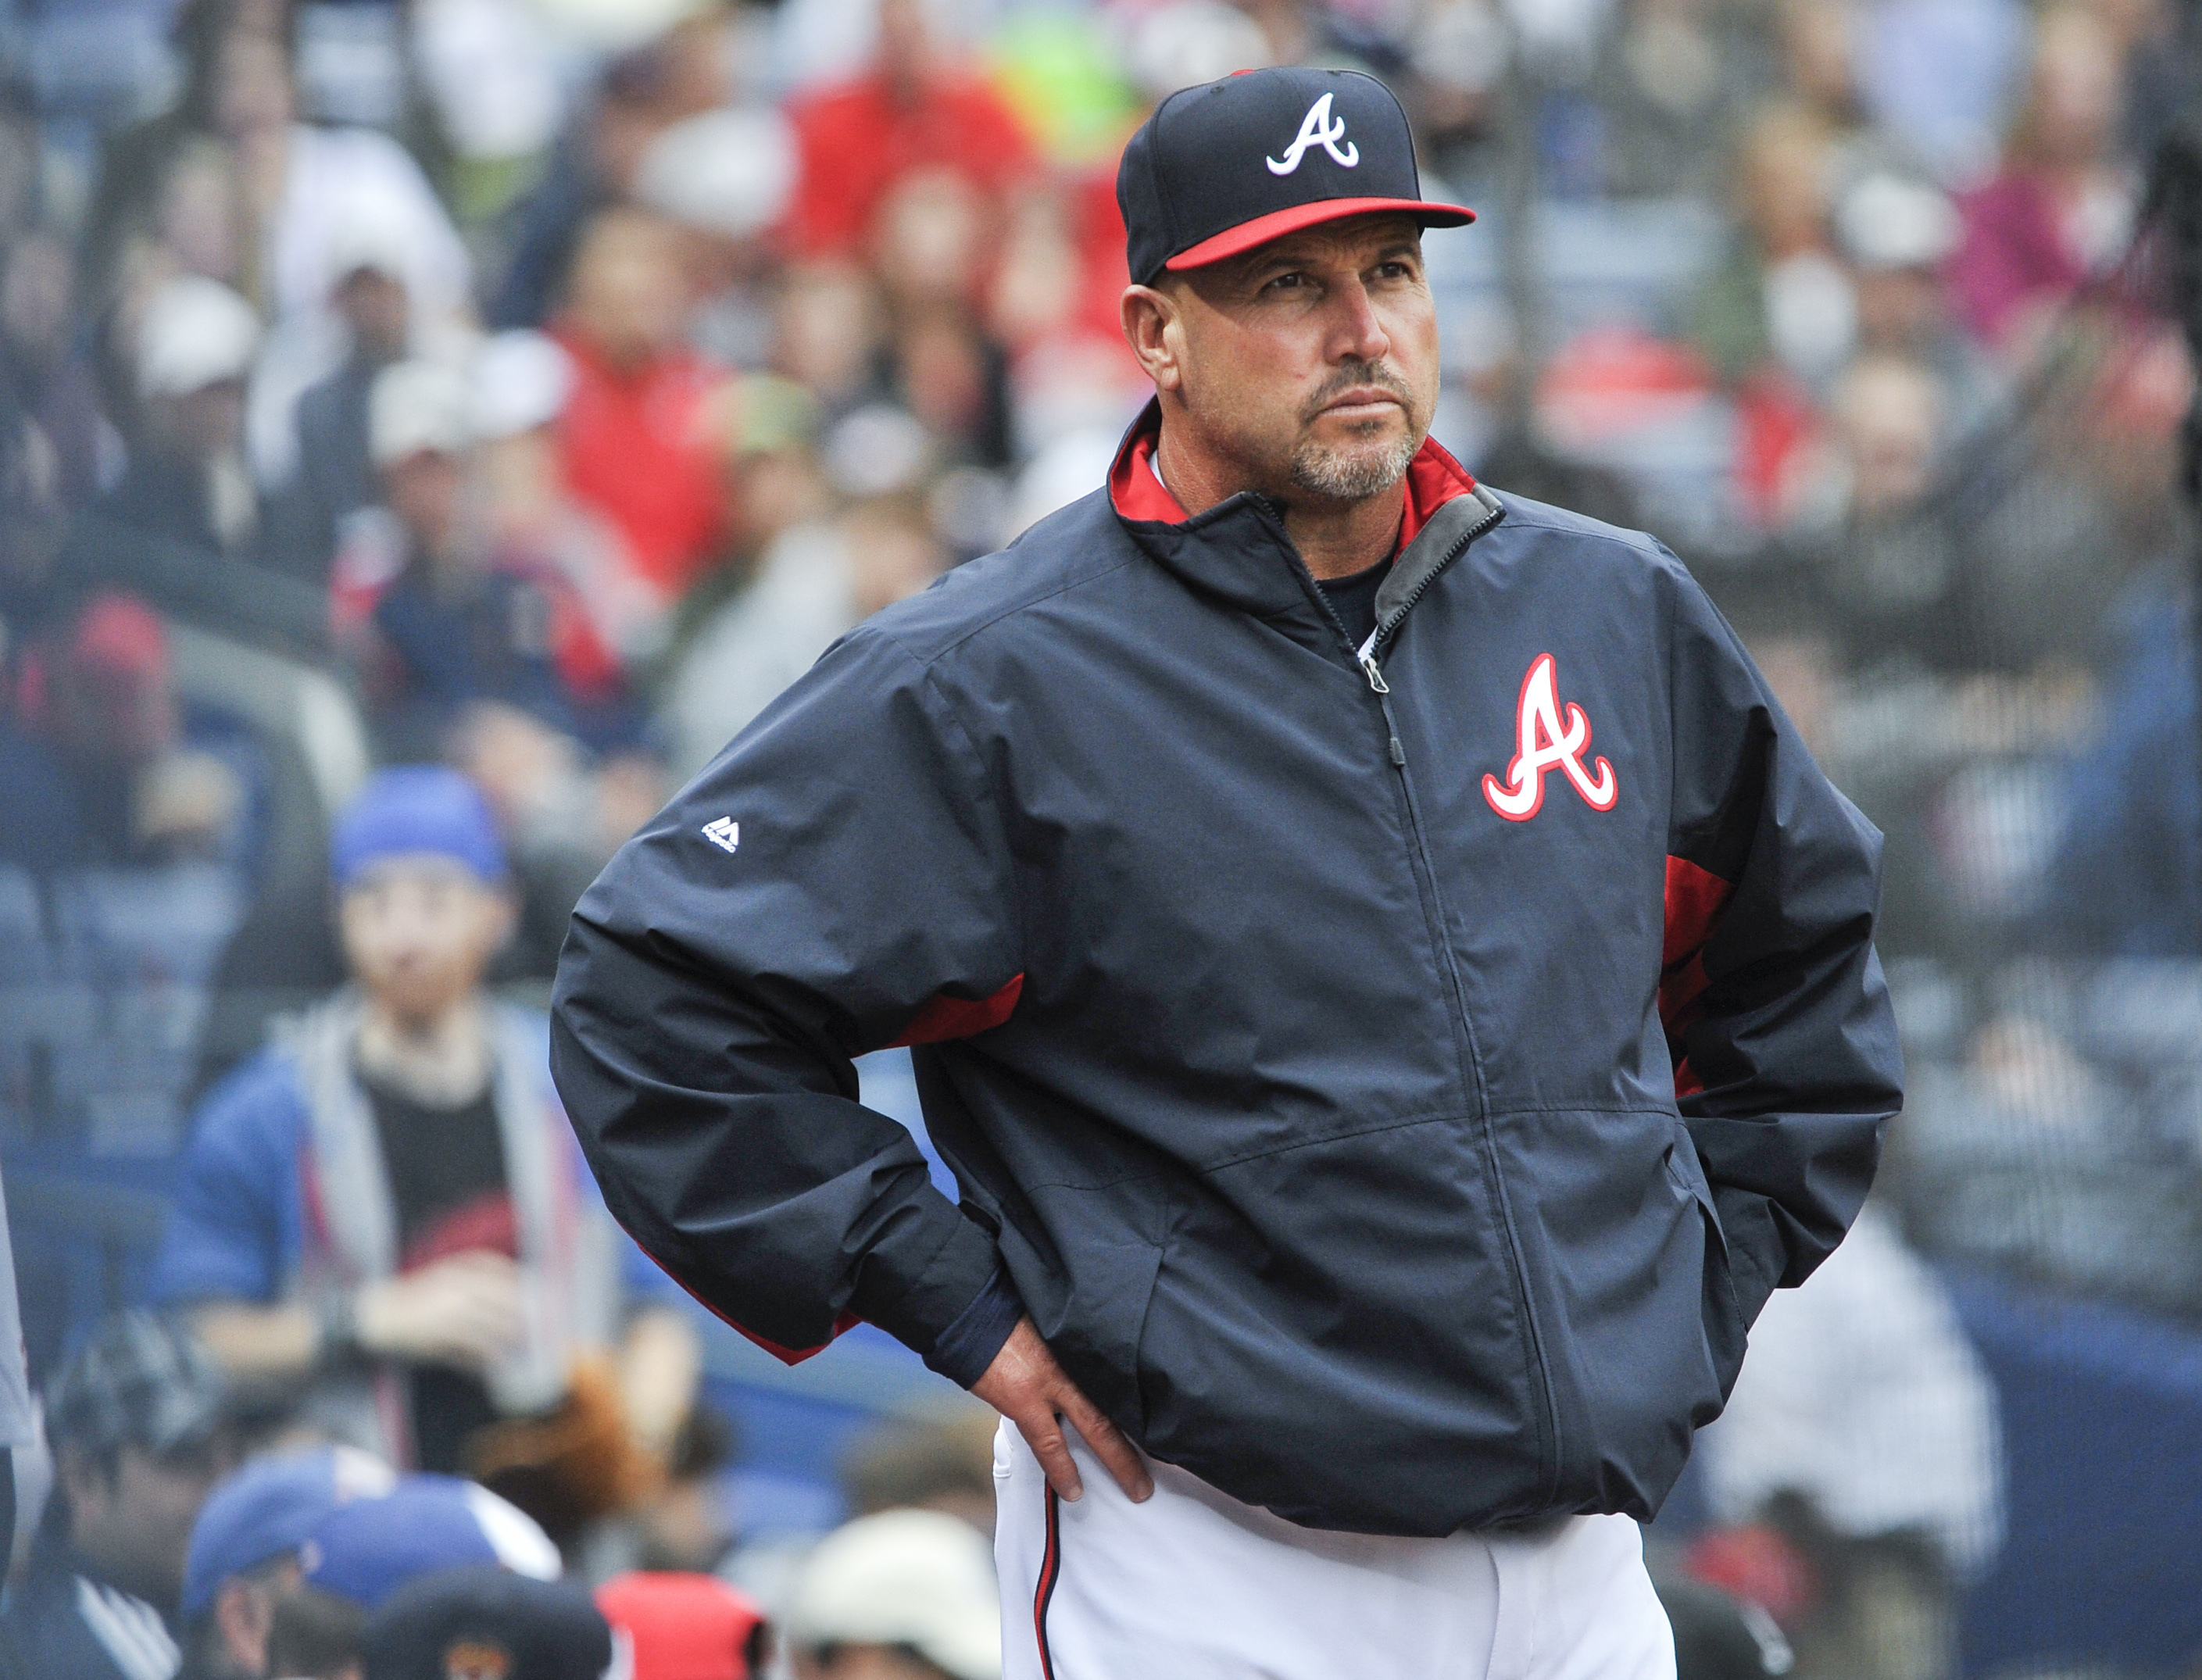 FILe - In this Oct. 4, 2015, file photo, Atlanta Braves manager Fredi Gonzalez (33) waits for a review of a call during the fourth inning of the second baseball game of a doubleheader against the St. Louis Cardinals, in Atlanta. The Atlanta Braves have fi